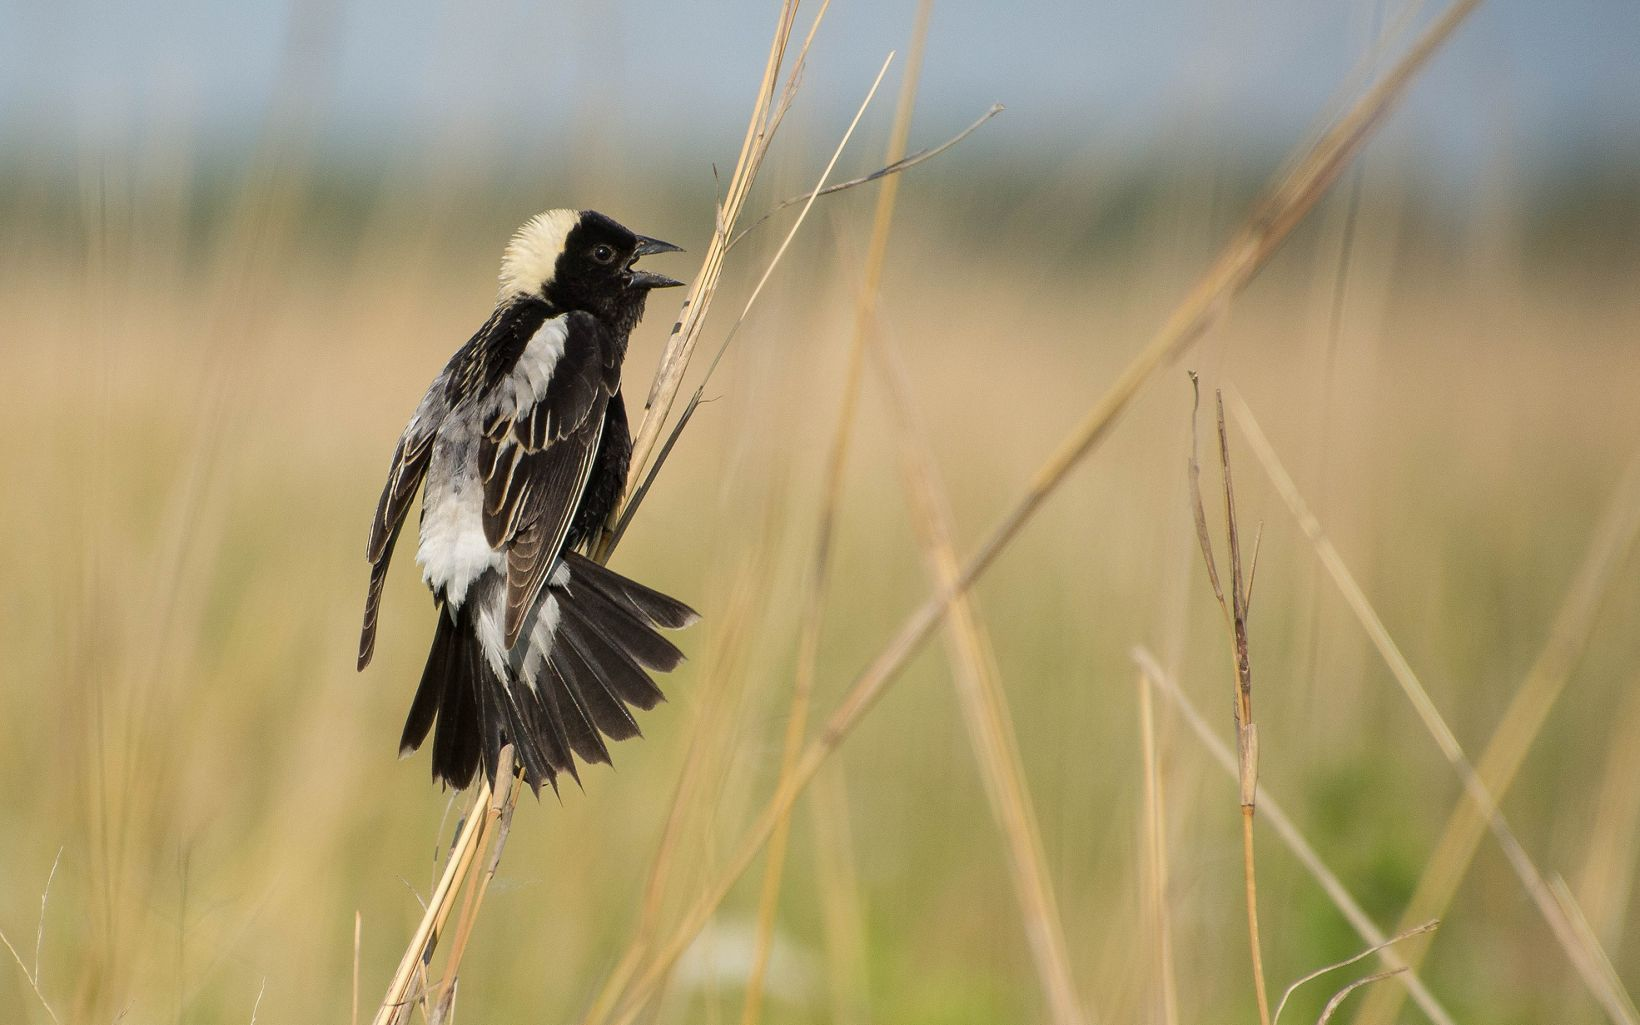 A black bird with a white crown and back perches on a tall grass frond.